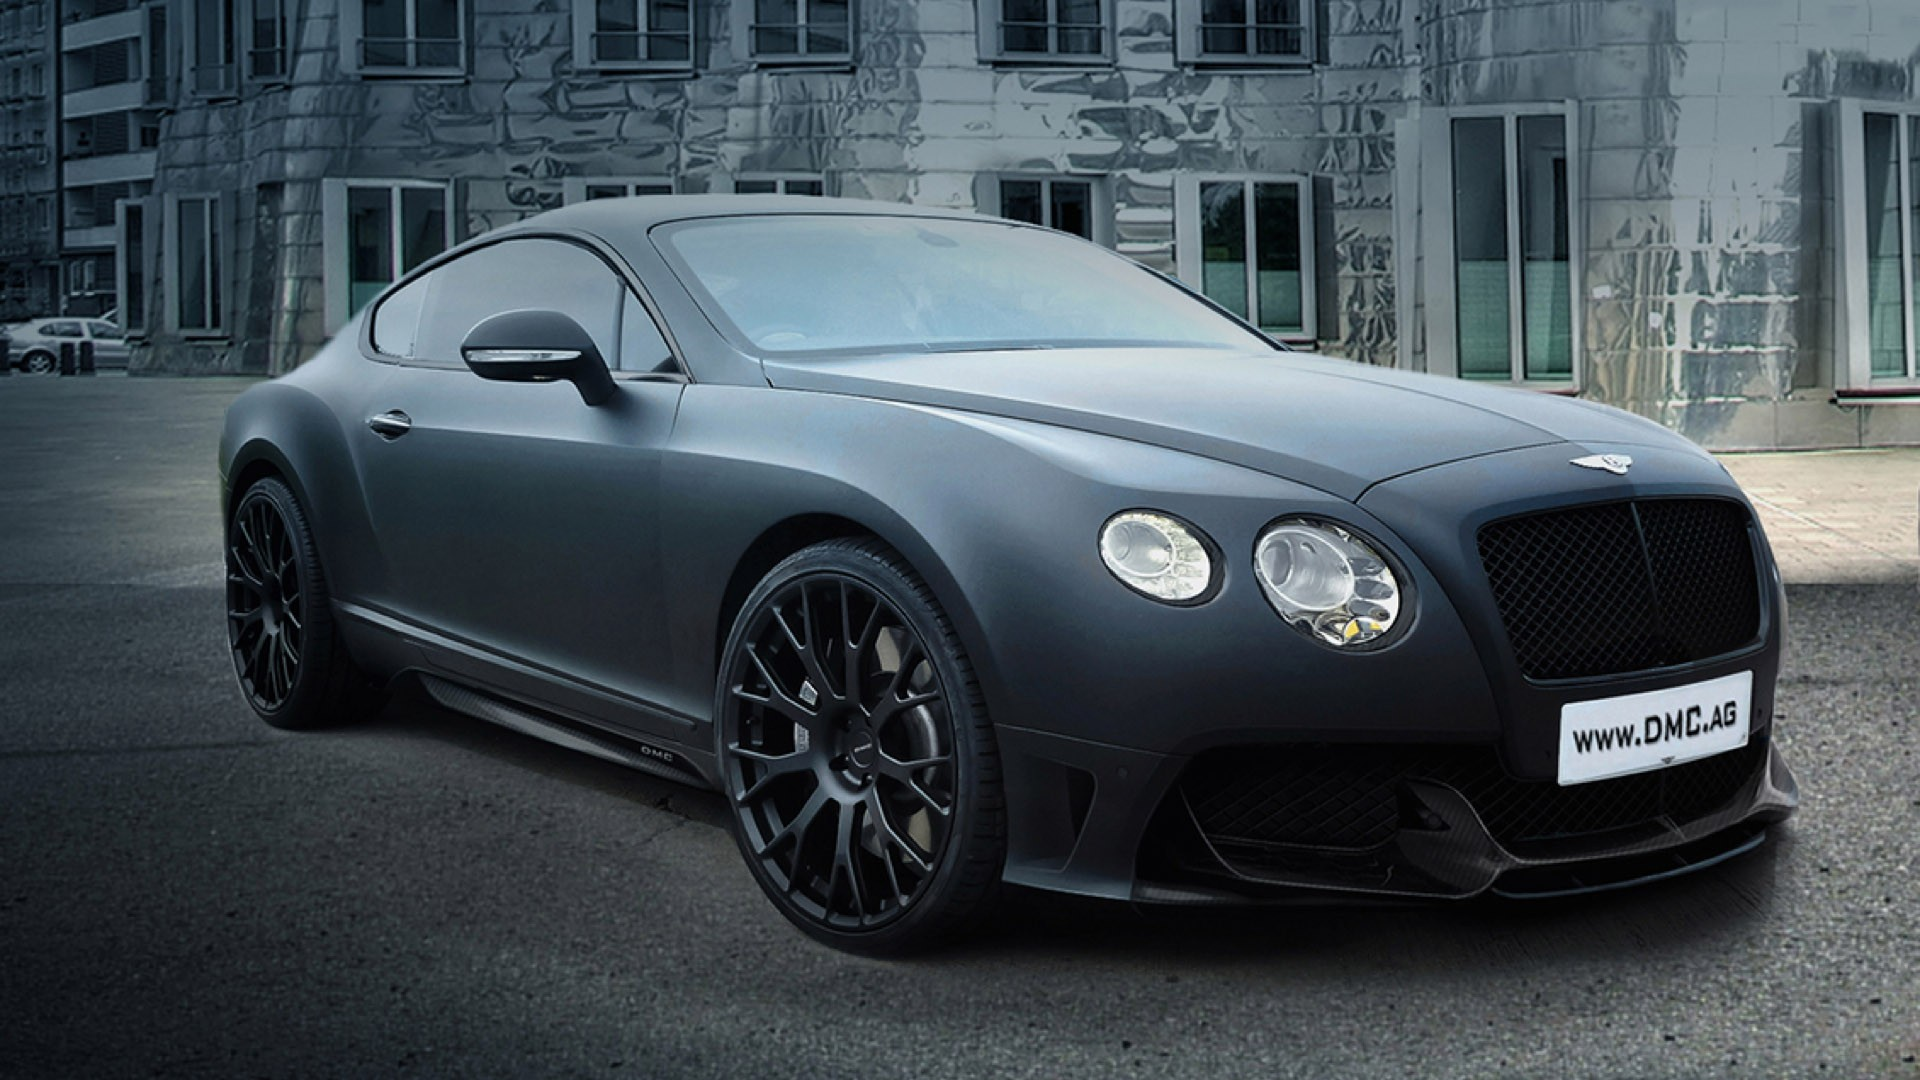 2014 DMC Bentley Continental GT Duro China Edition